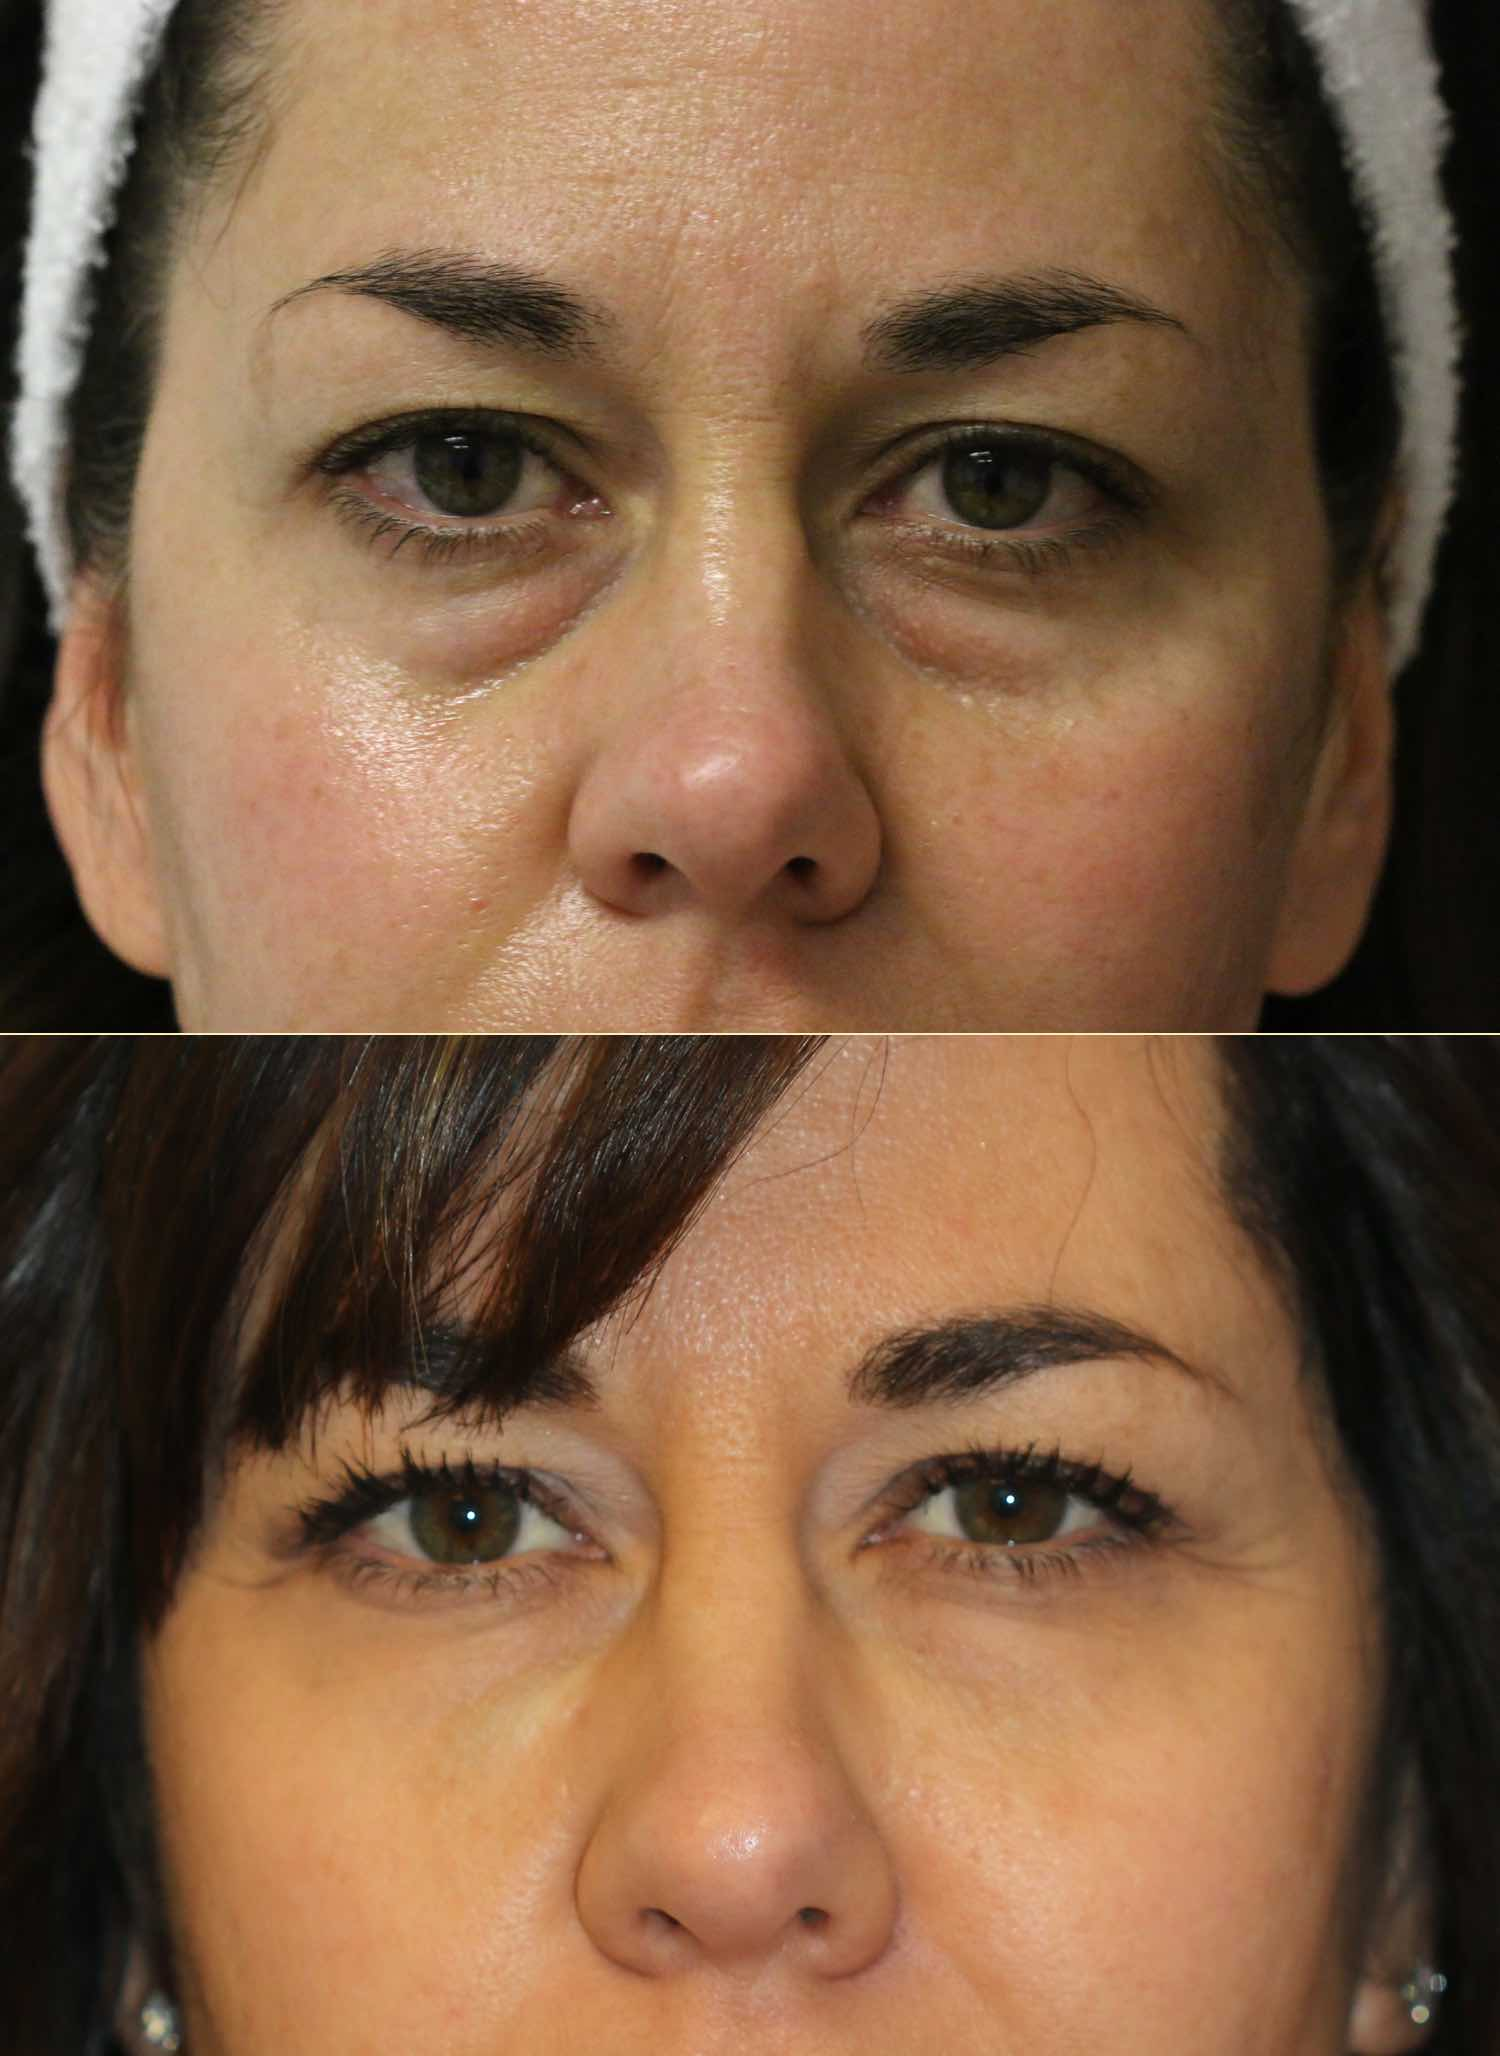 englishsurgeon.com. Photos show the improvement in the lower eyelid grooves